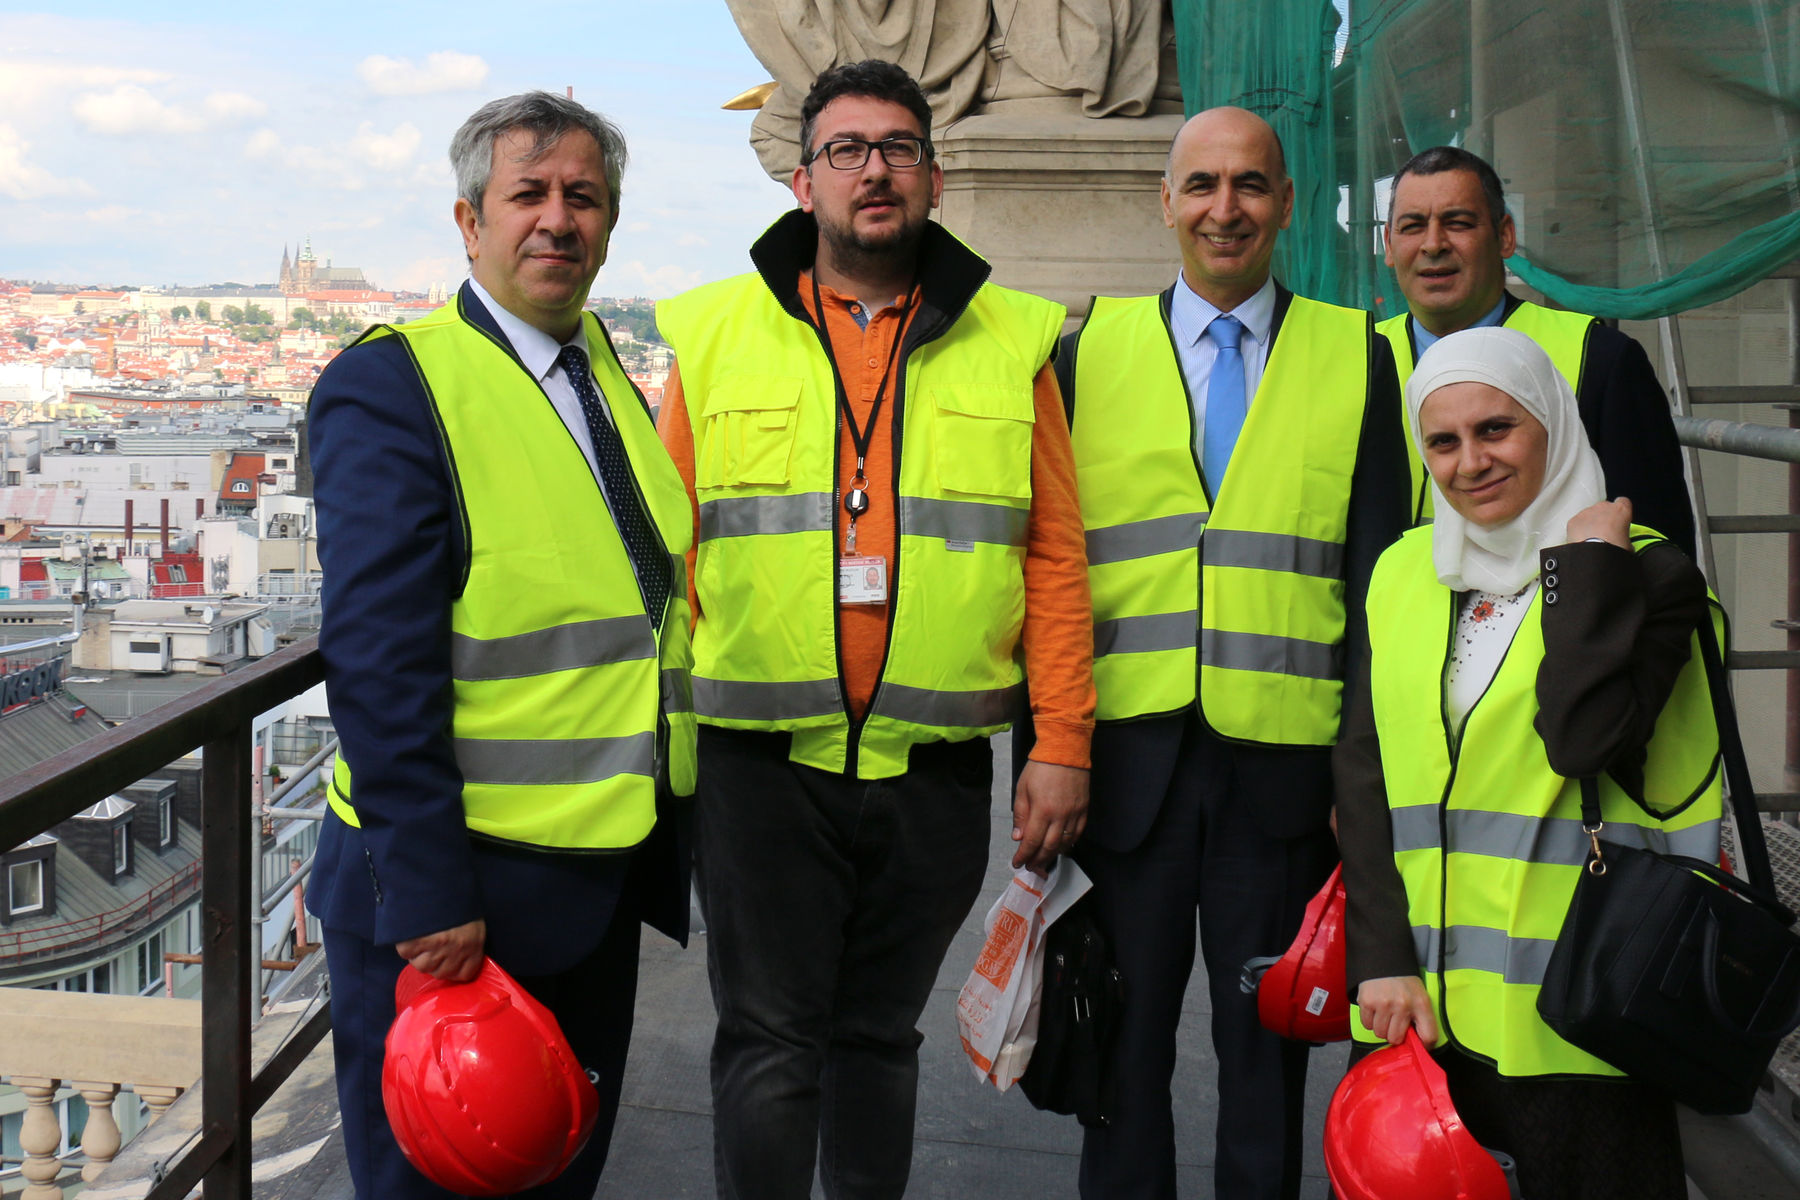 The delegation visited the Historical Building of the National Museum, which is being reconstructed at the moment.